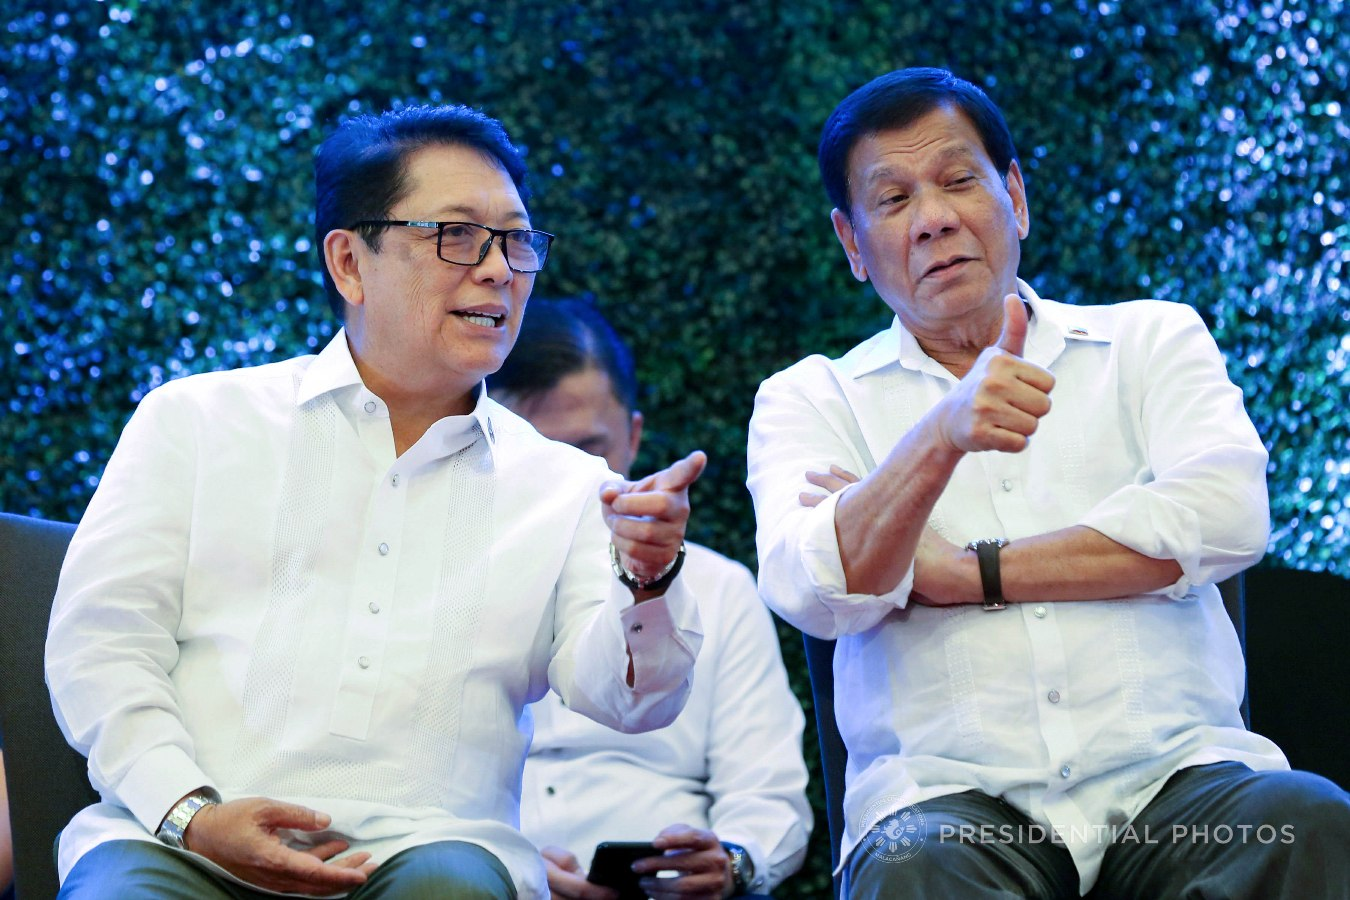 President Rodrigo Roa Duterte gives the thumbs up to the guests during the 7th anniversary of the public service show, 'Buhay OFW', at the Sofitel Philippine Plaza in Pasay City on October 18, 2017. Also in the photo is Labor and Employment Secretary Silvestre Bello III. RICHARD MADELO/PRESIDENTIAL